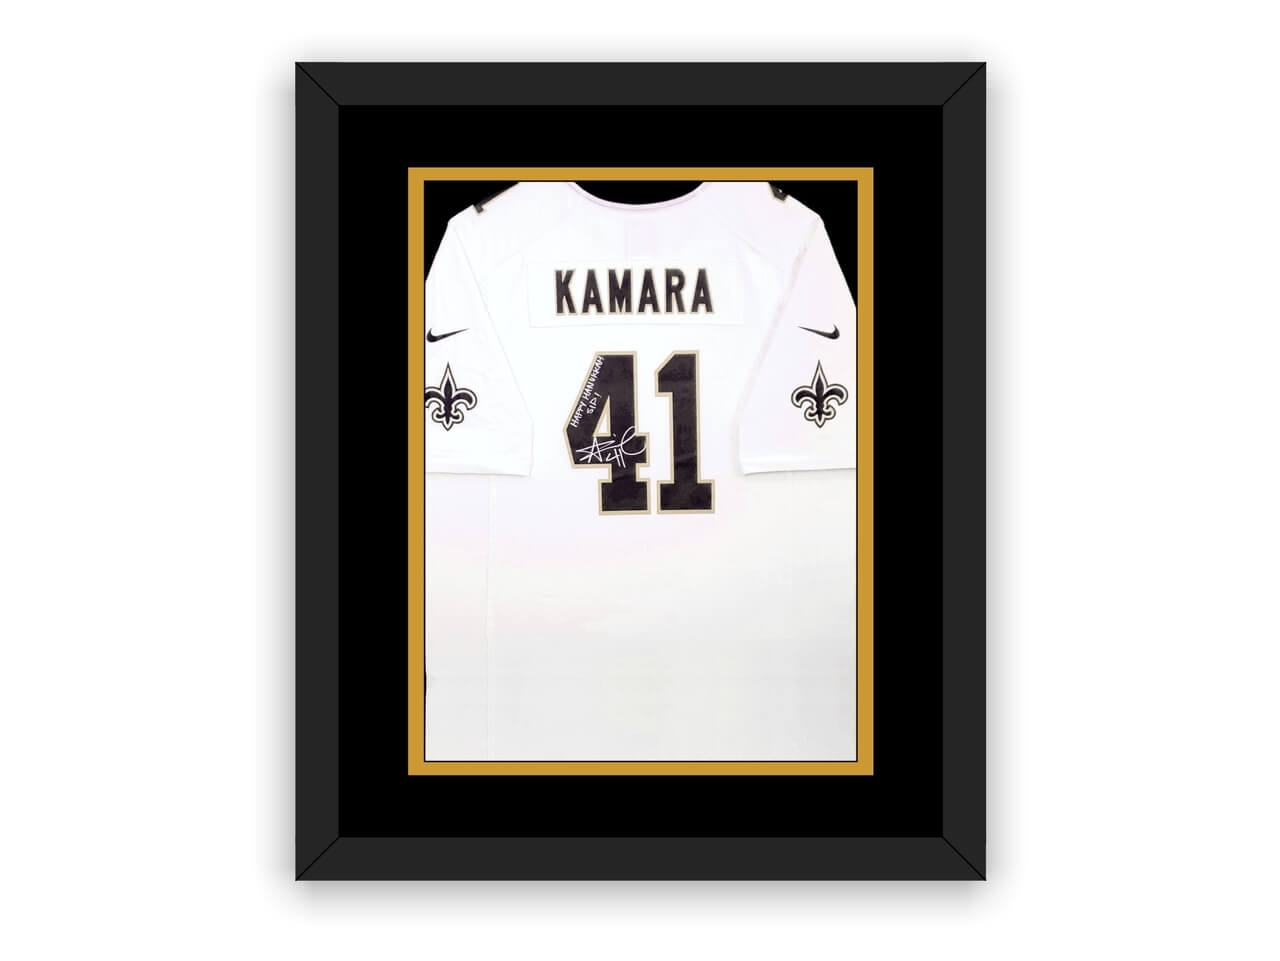 A full-size jersey in a display frame